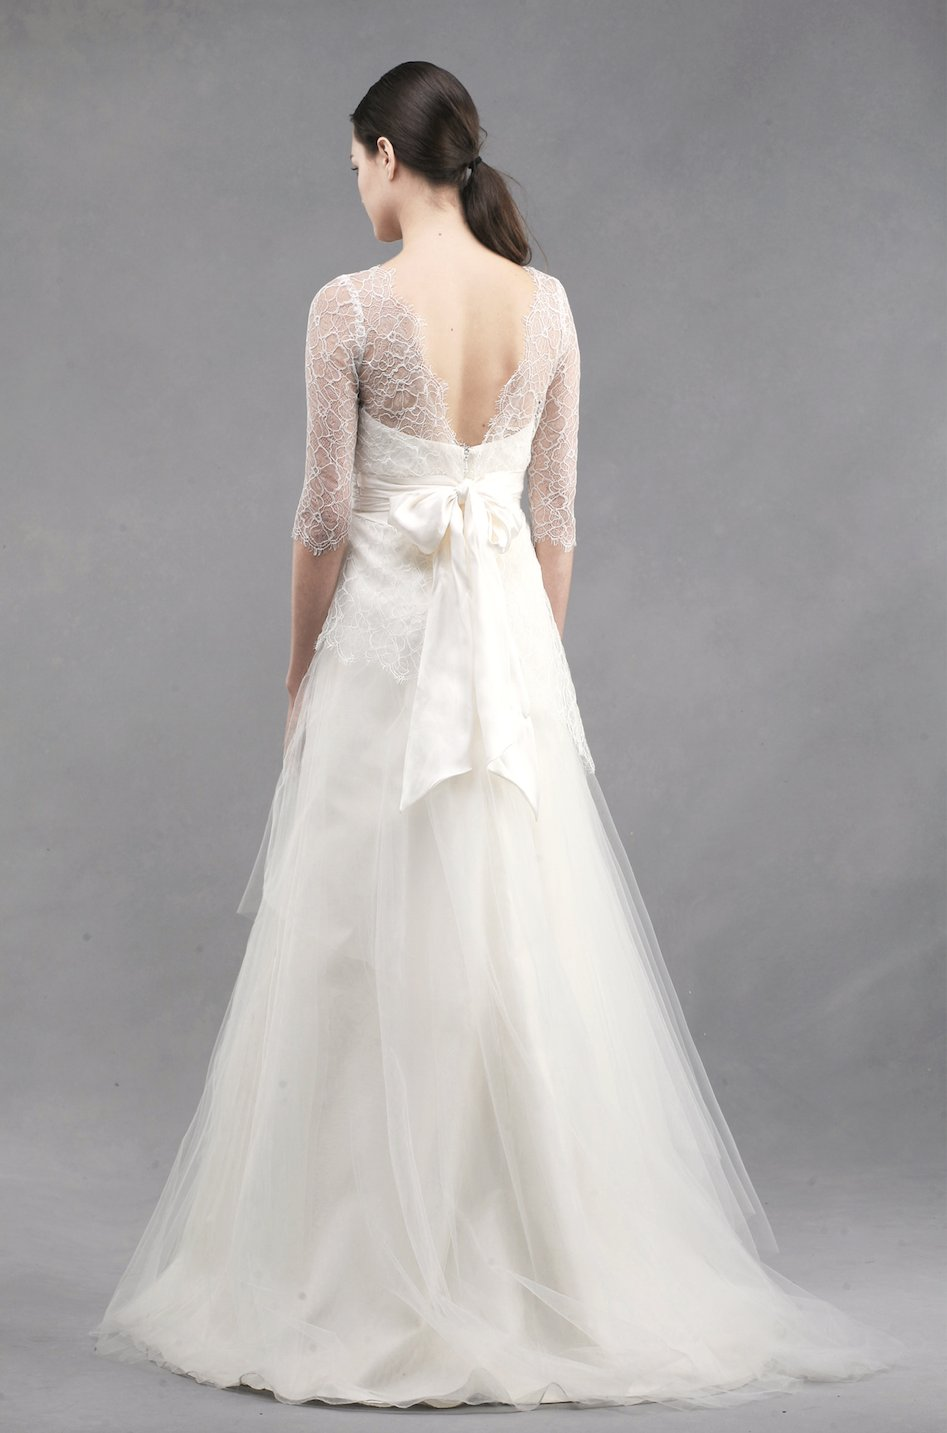 Wedding-dress-by-jenny-yoo-spring-2013-bridal-addison-back.full